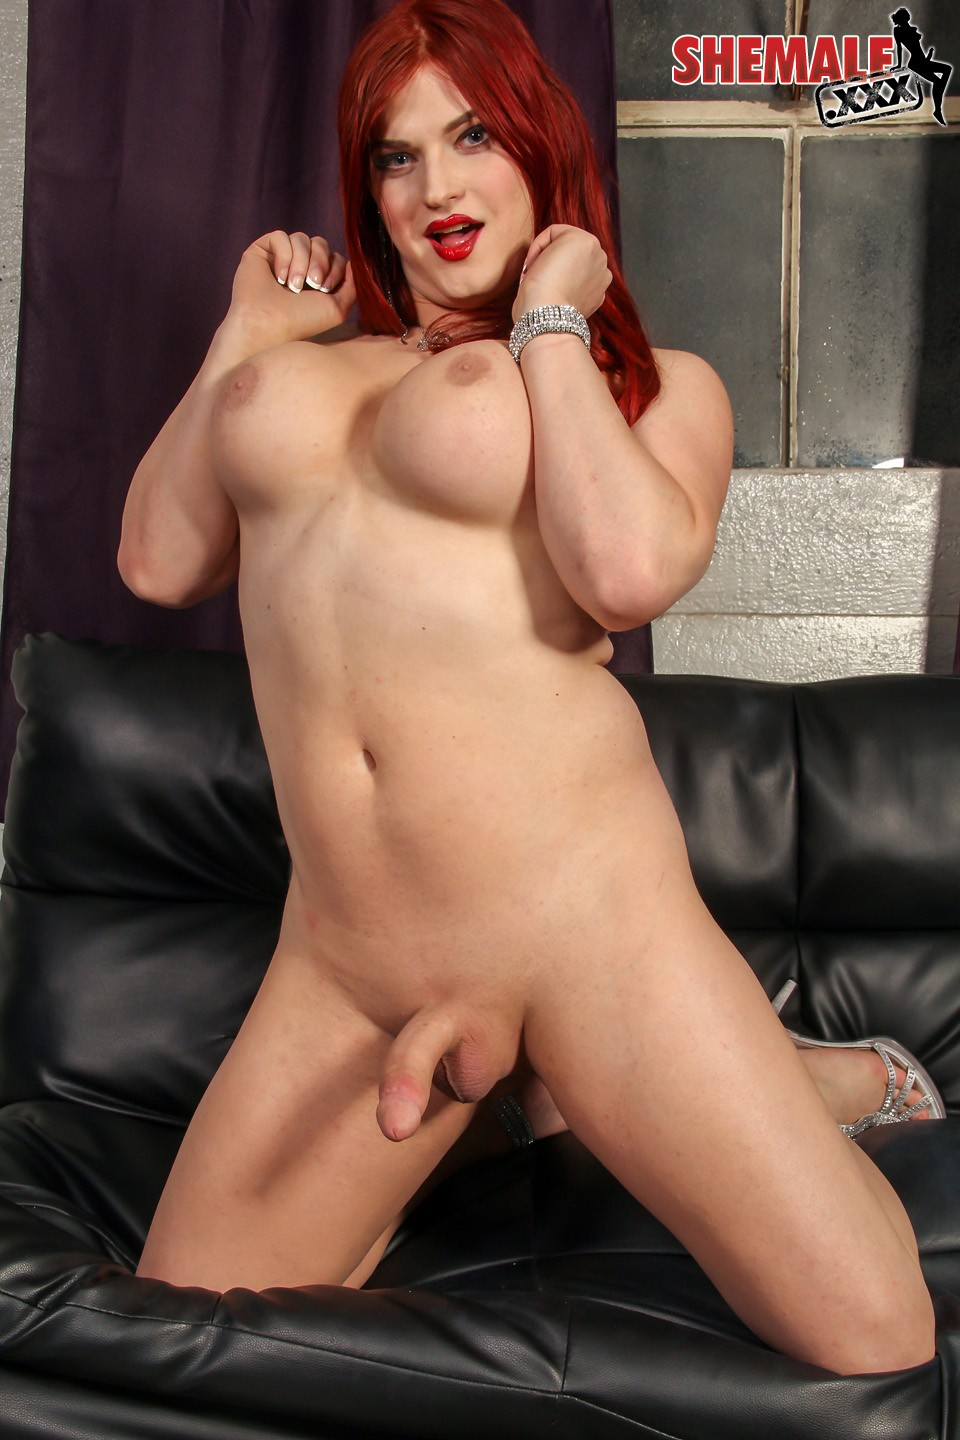 Shemale tiffany starr xxx hot pictures